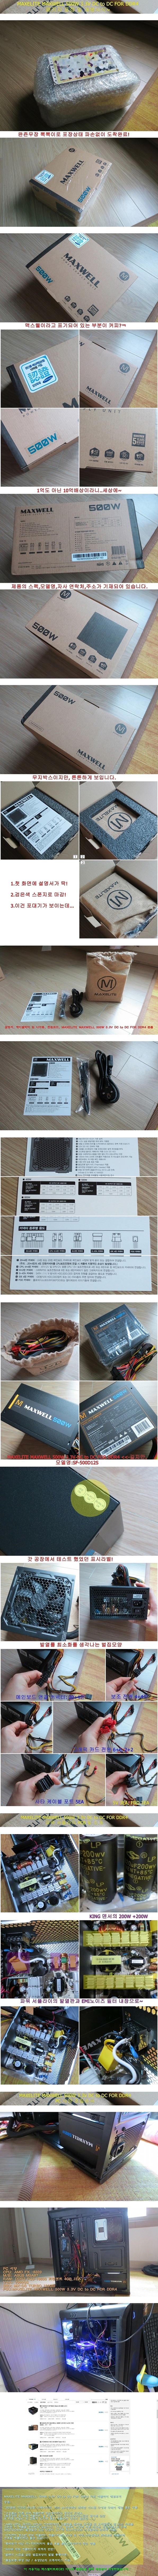 MAXELITE MAXWELL 500W 3.3V DC to DC FOR DDR4 - 허리엔비타민C